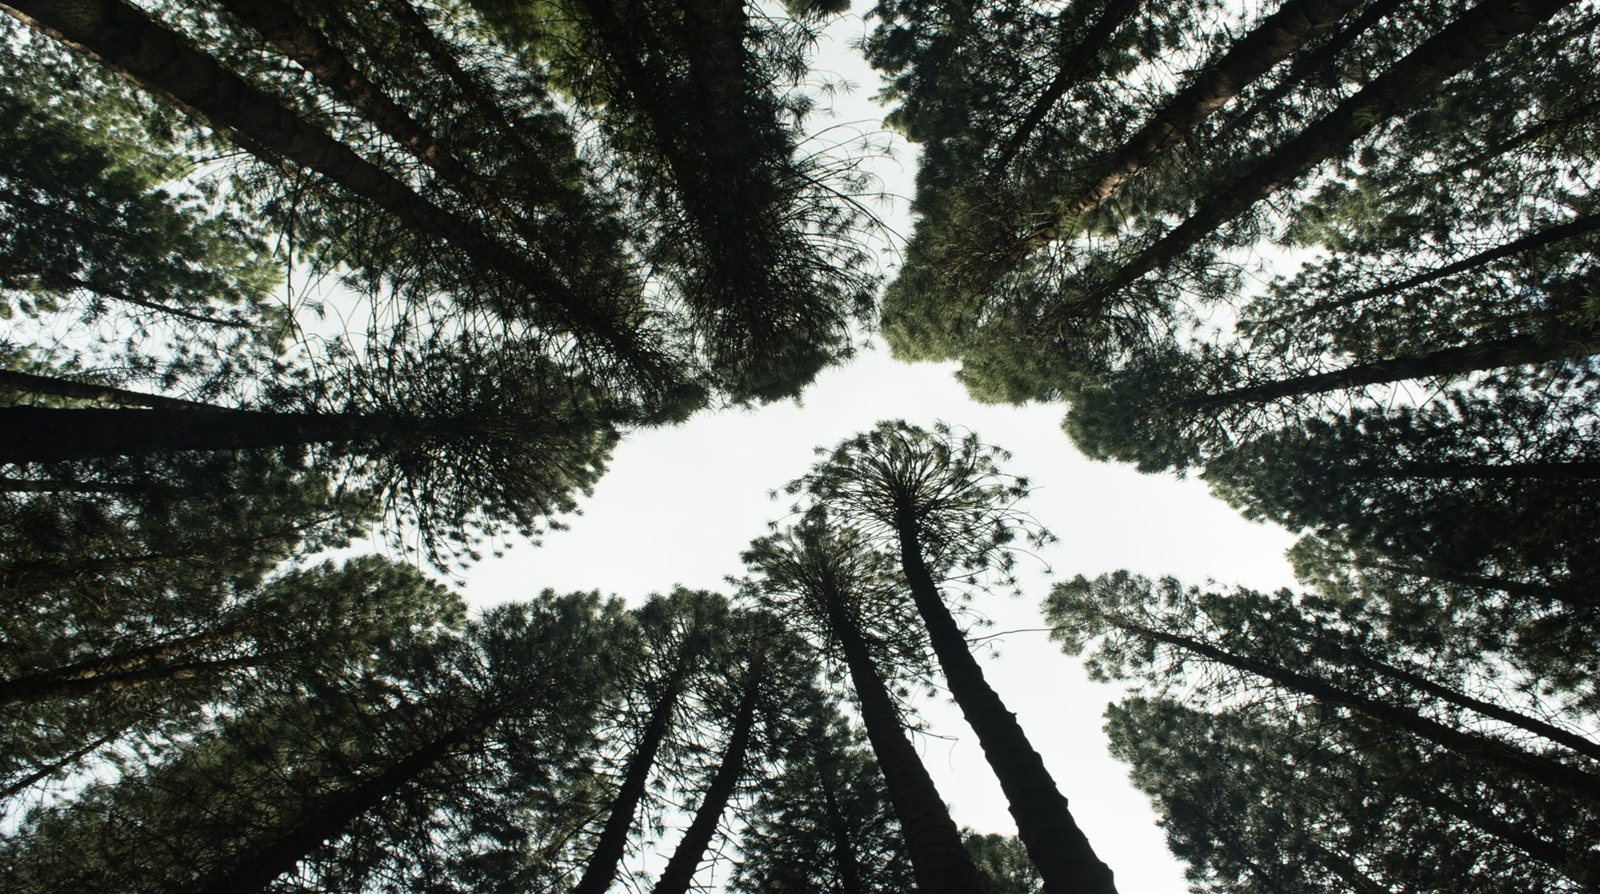 Looking up through the canopy of a forest